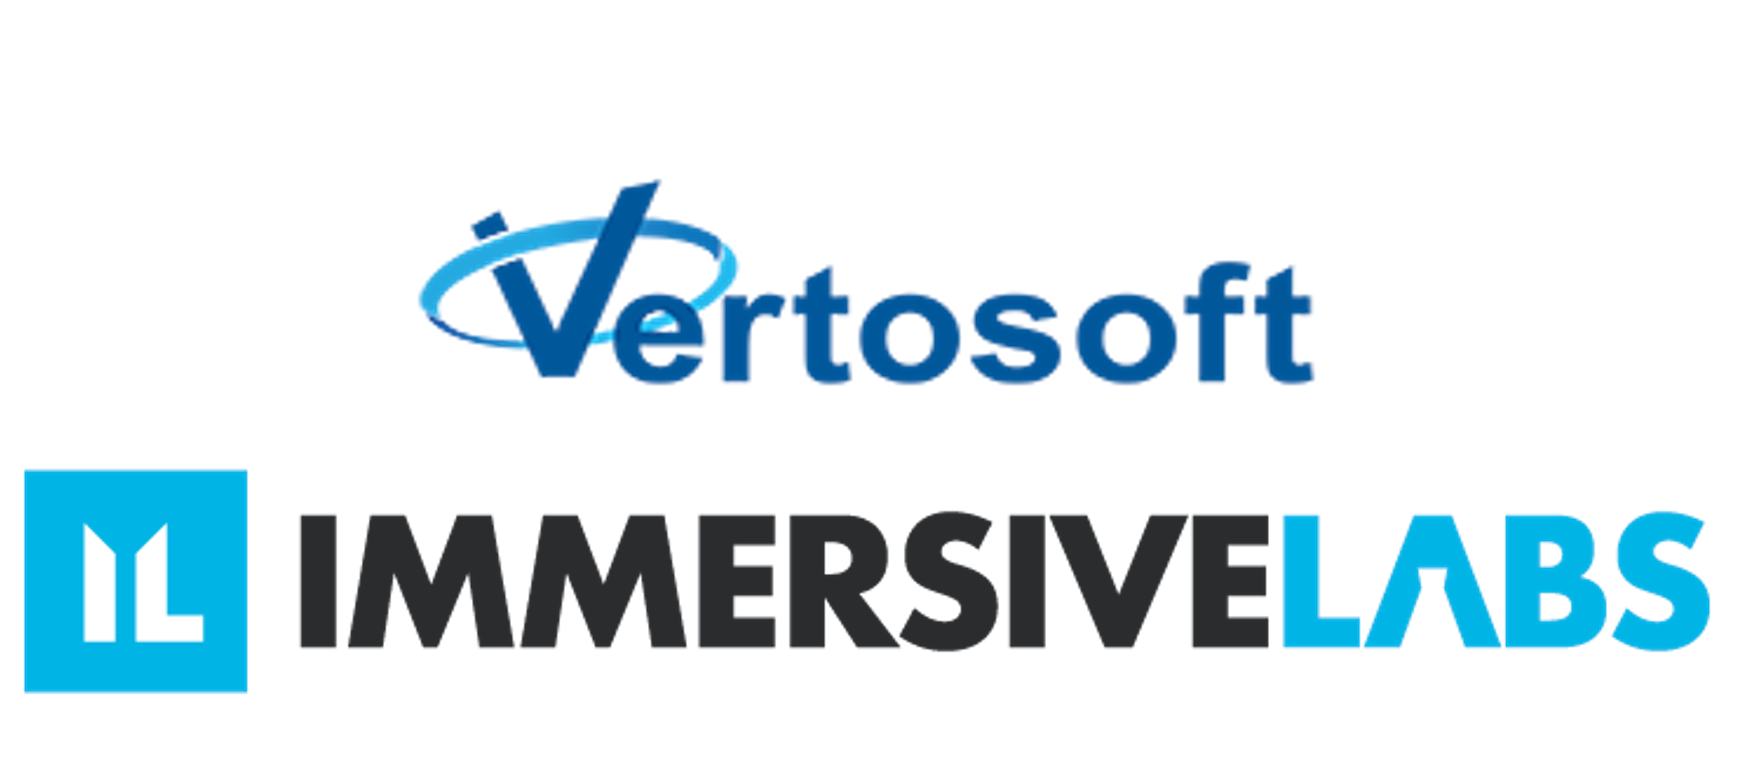 Vertosoft Named as a Solutions Distributor by Immersive Labs